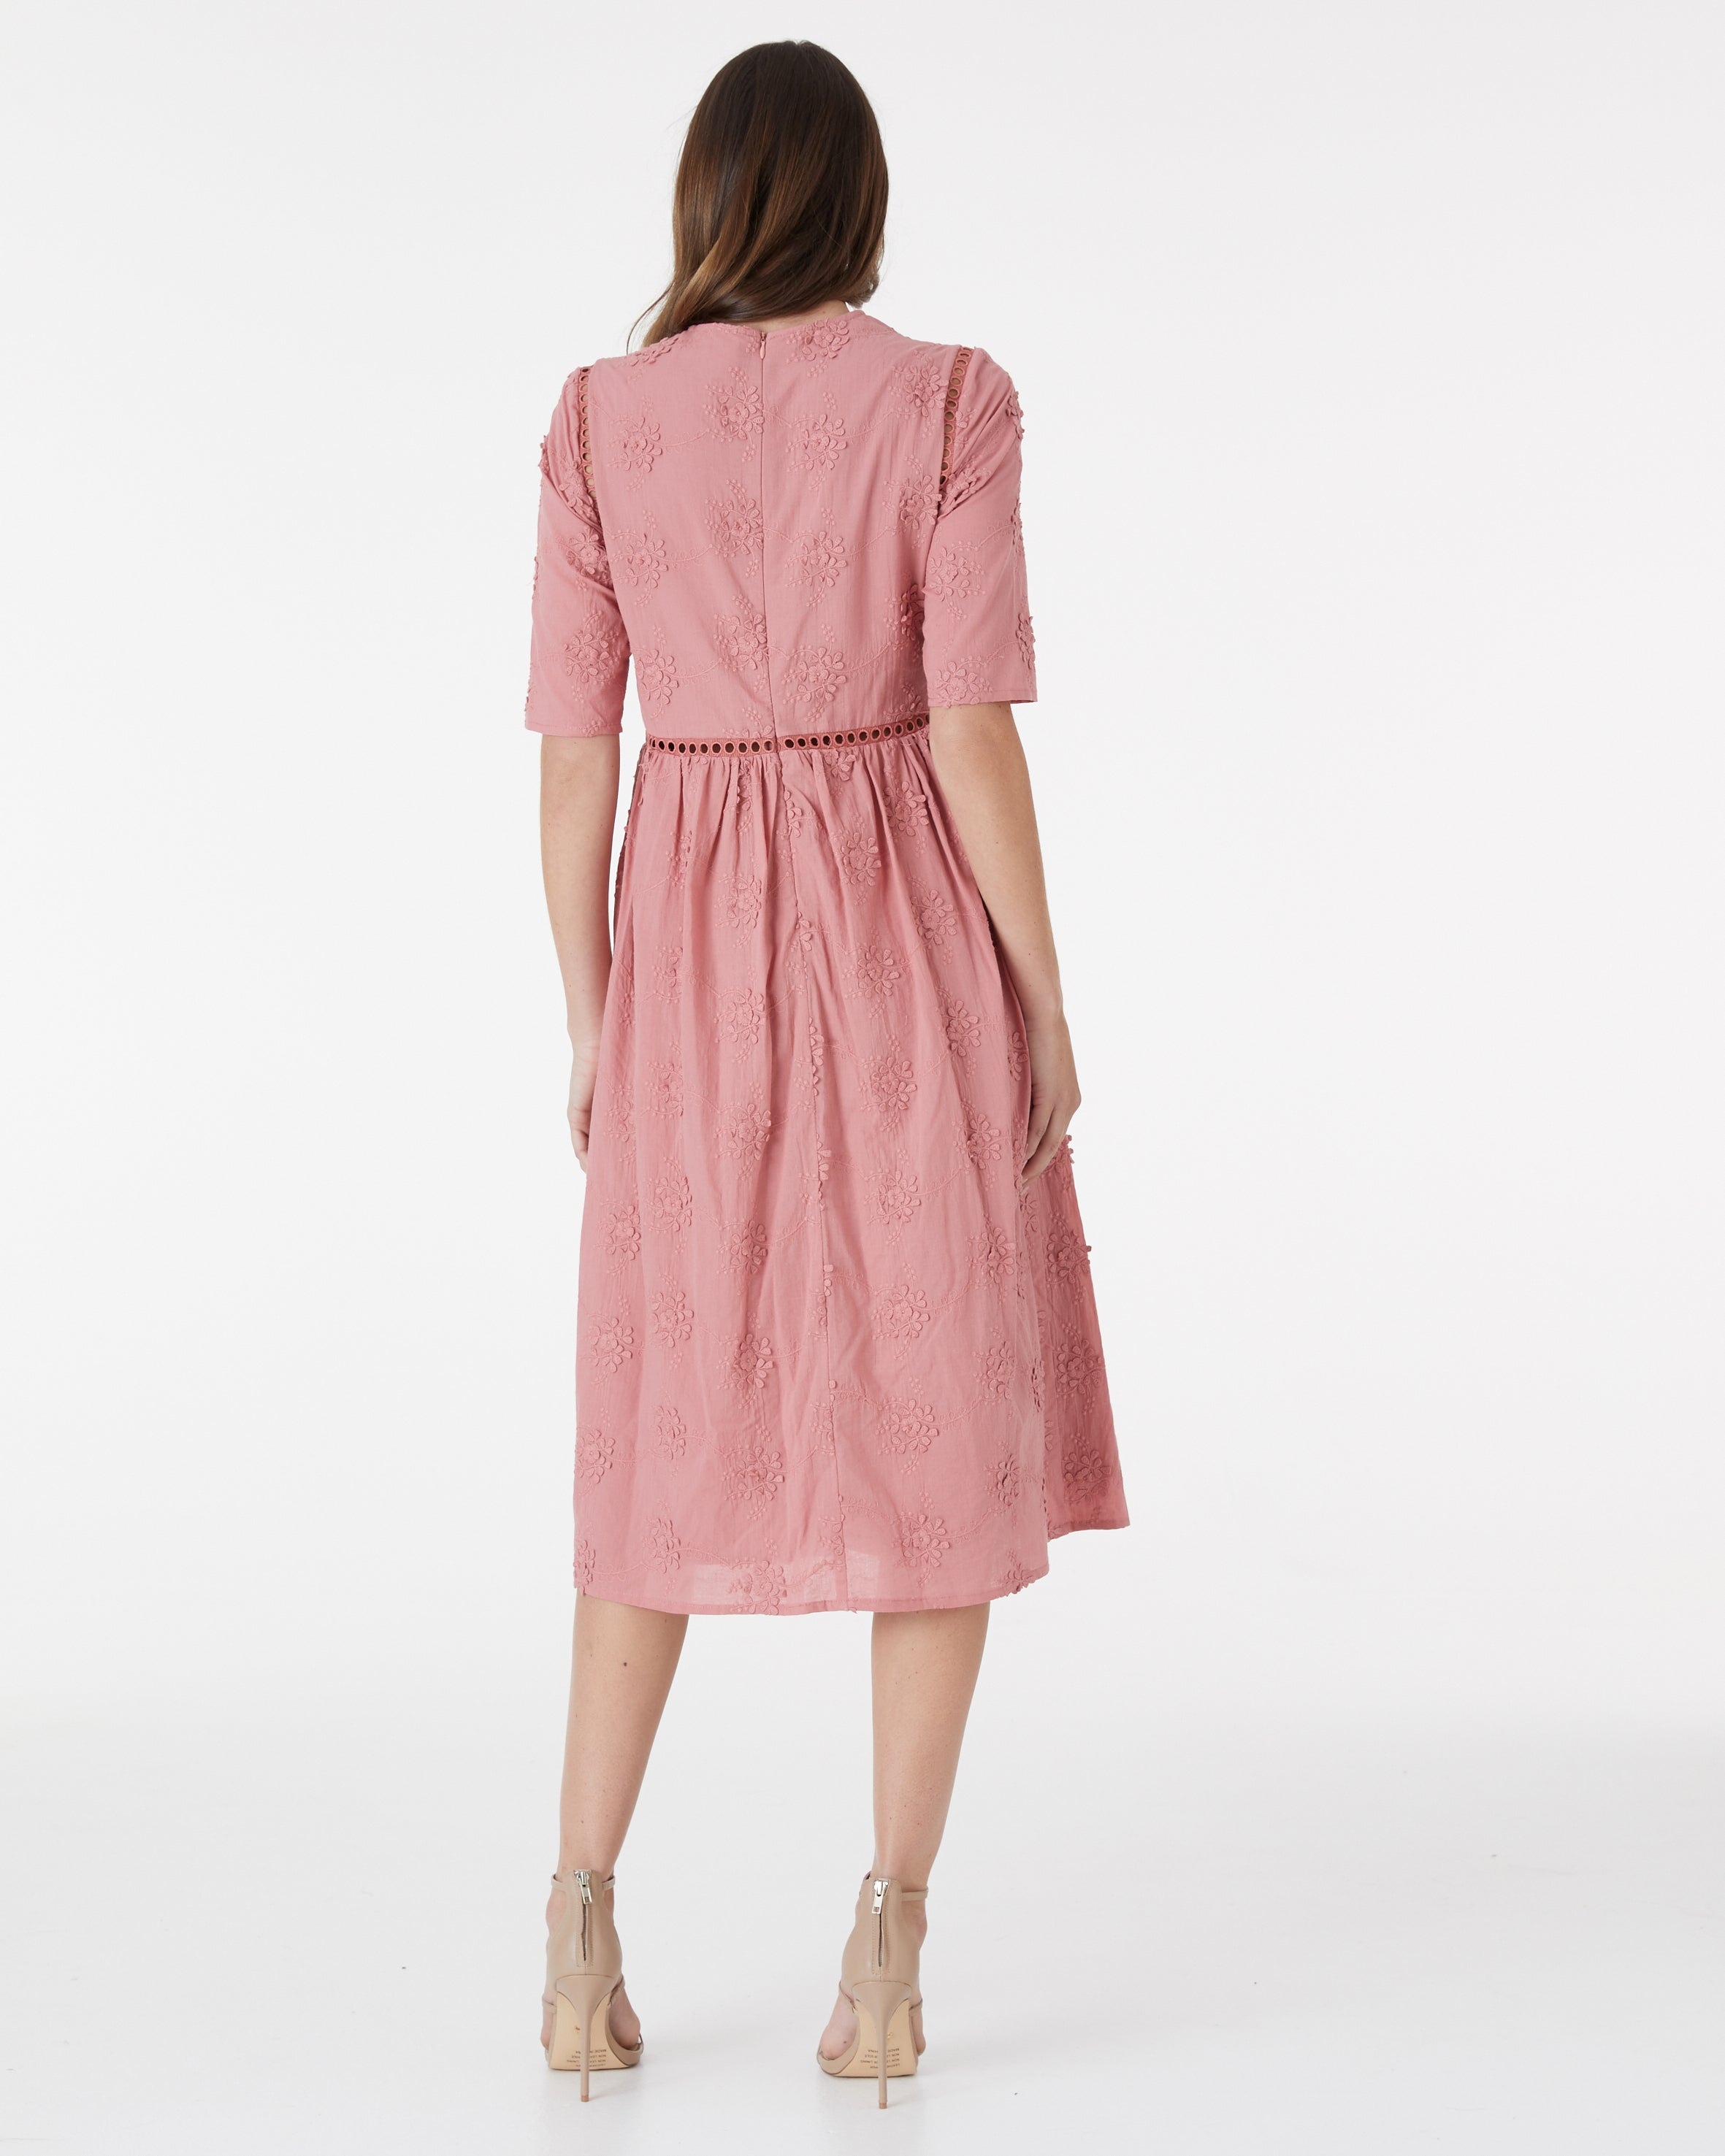 ON LOCATION DRESS - DUSTY ROSE